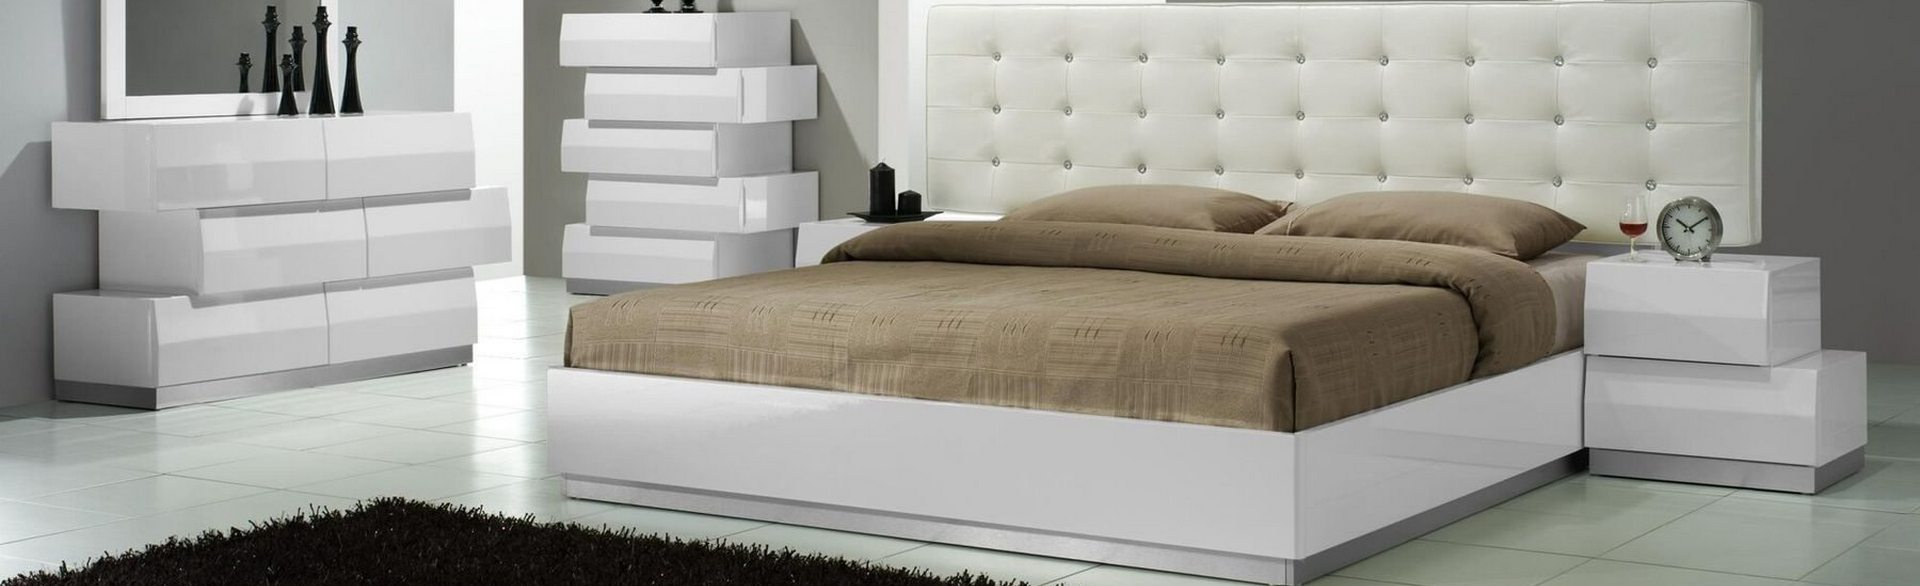 Mattress Platform 7 Best Mattresses For Platform Bed Apr 2019 Ultimate Guide